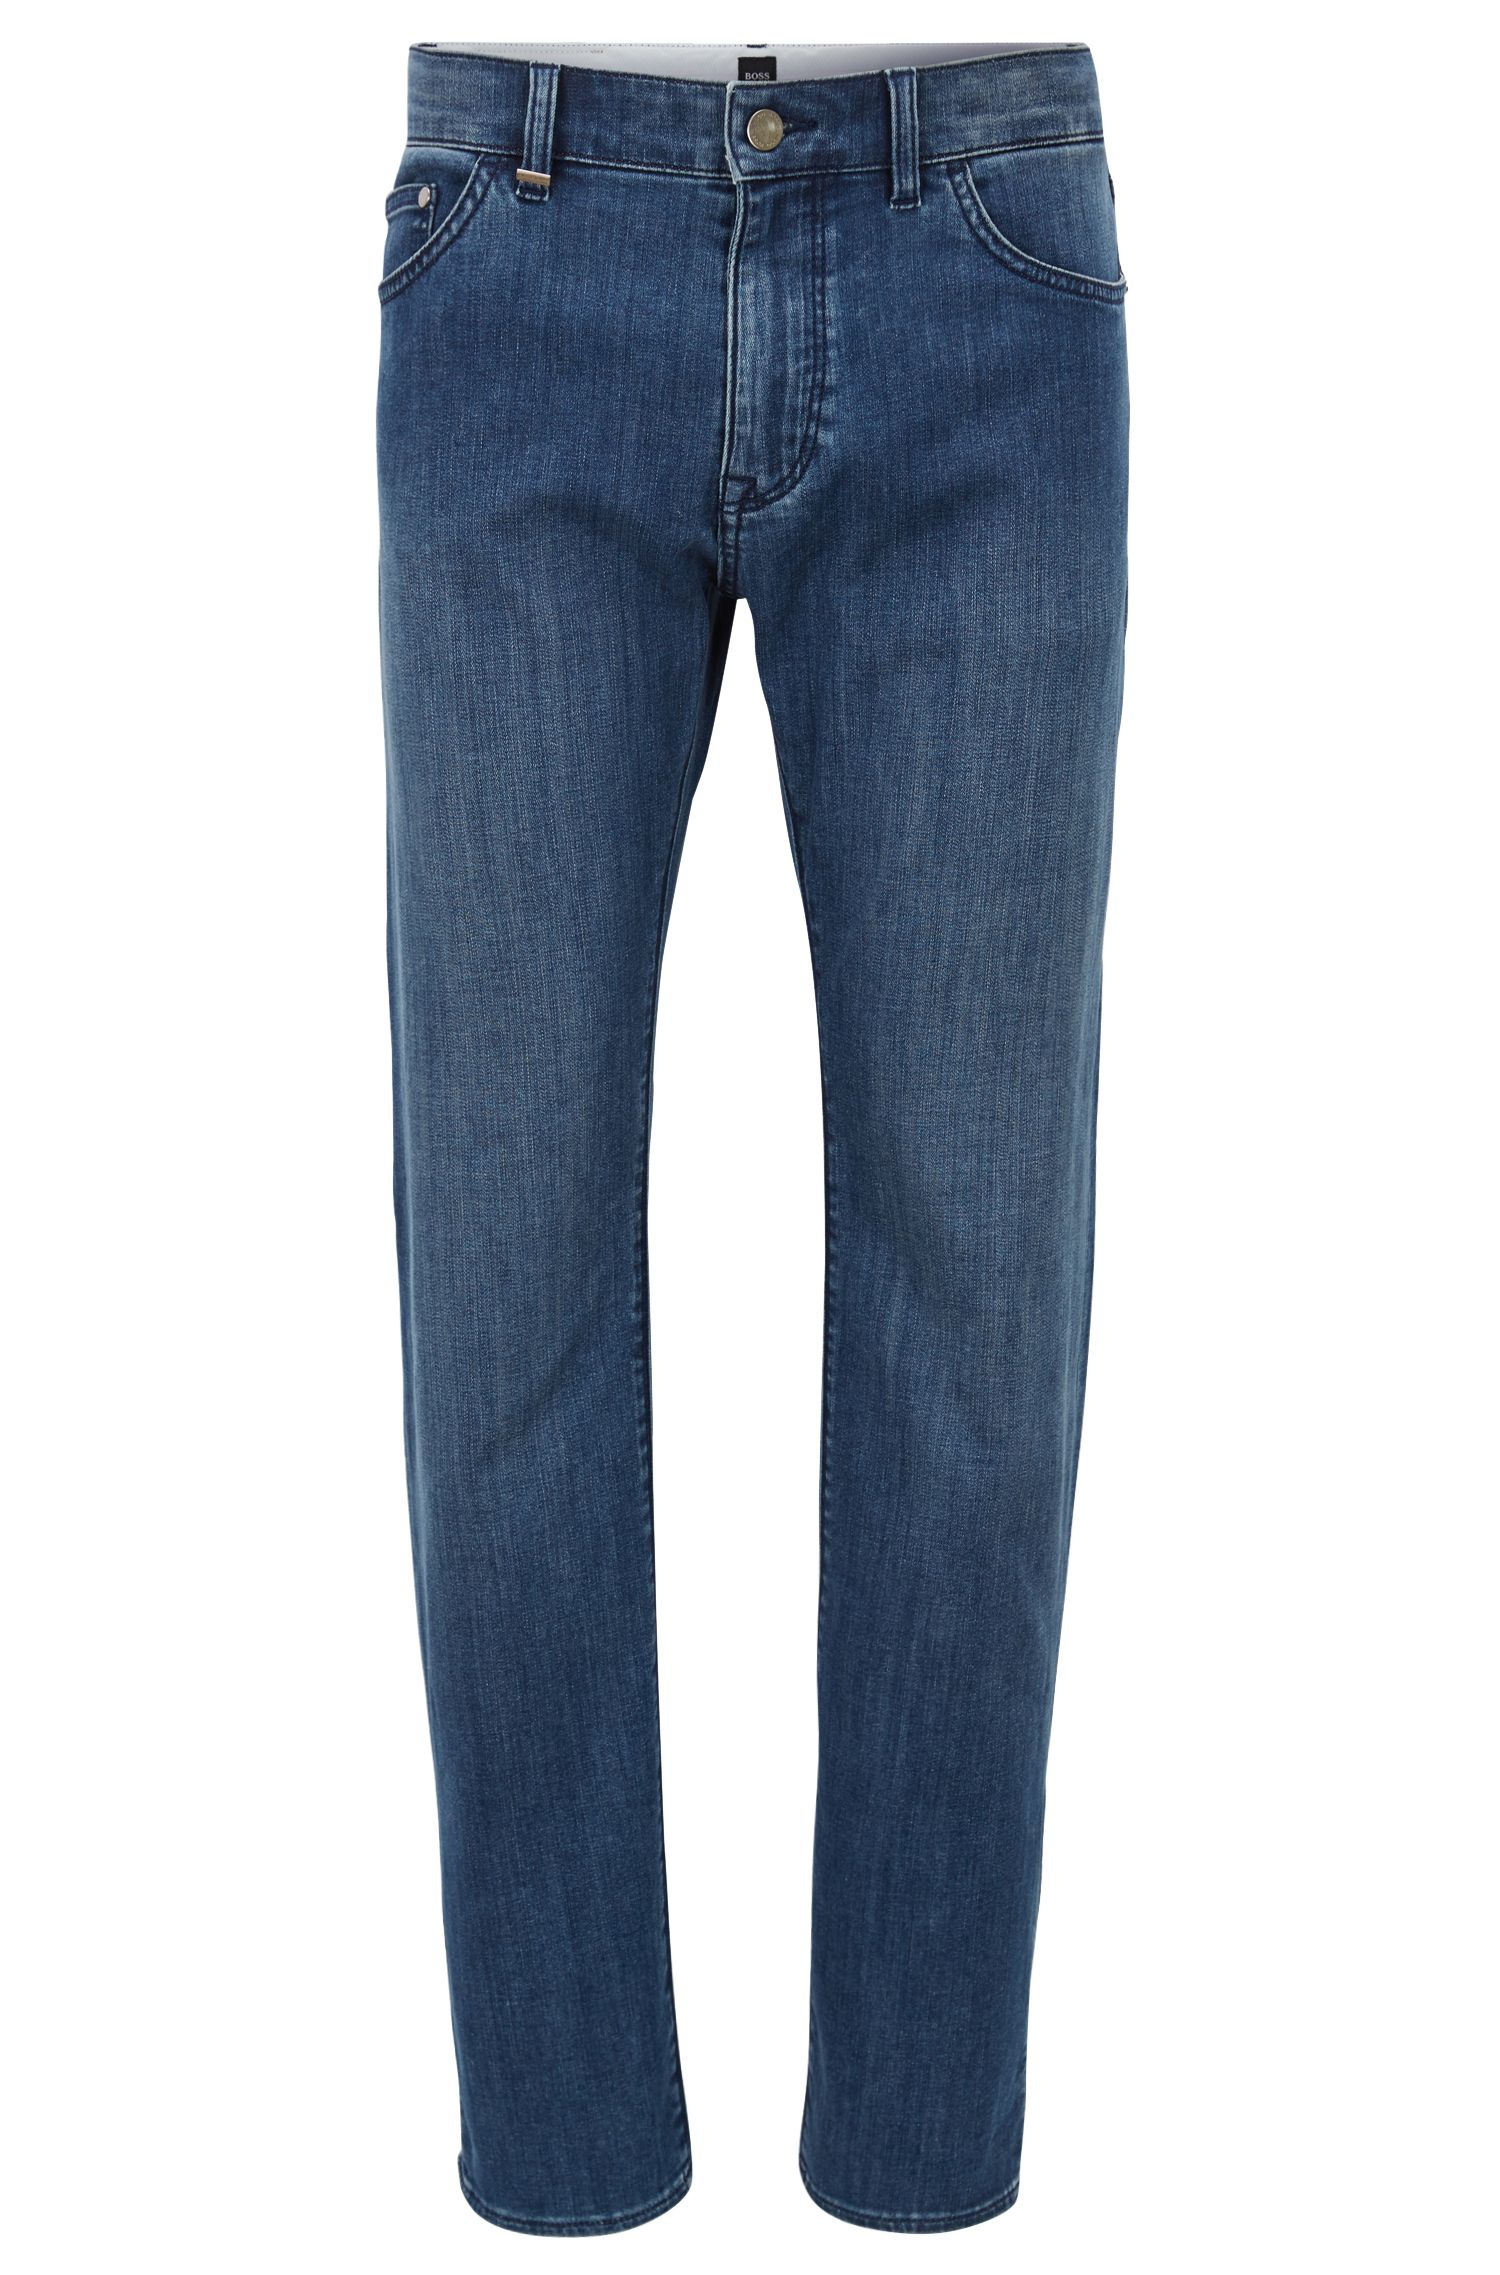 Jean Regular Fit en denim stretch bleu foncé